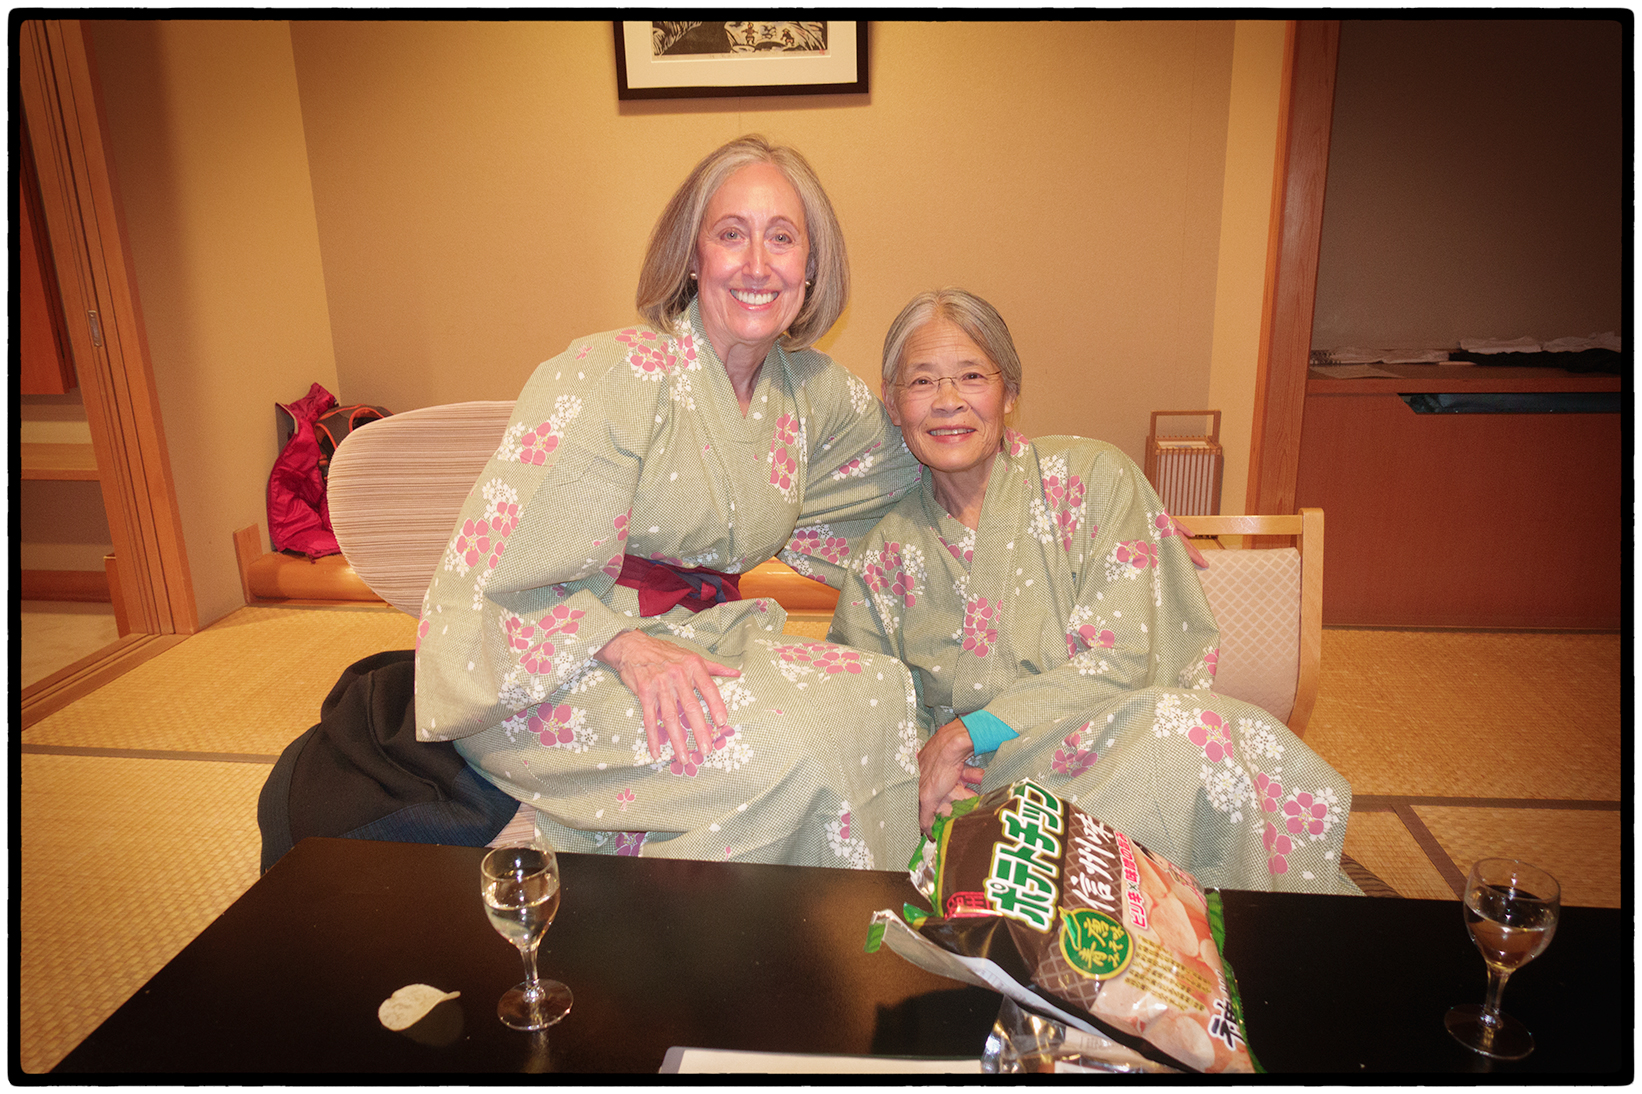 Gail and Jadyne in Yukatas